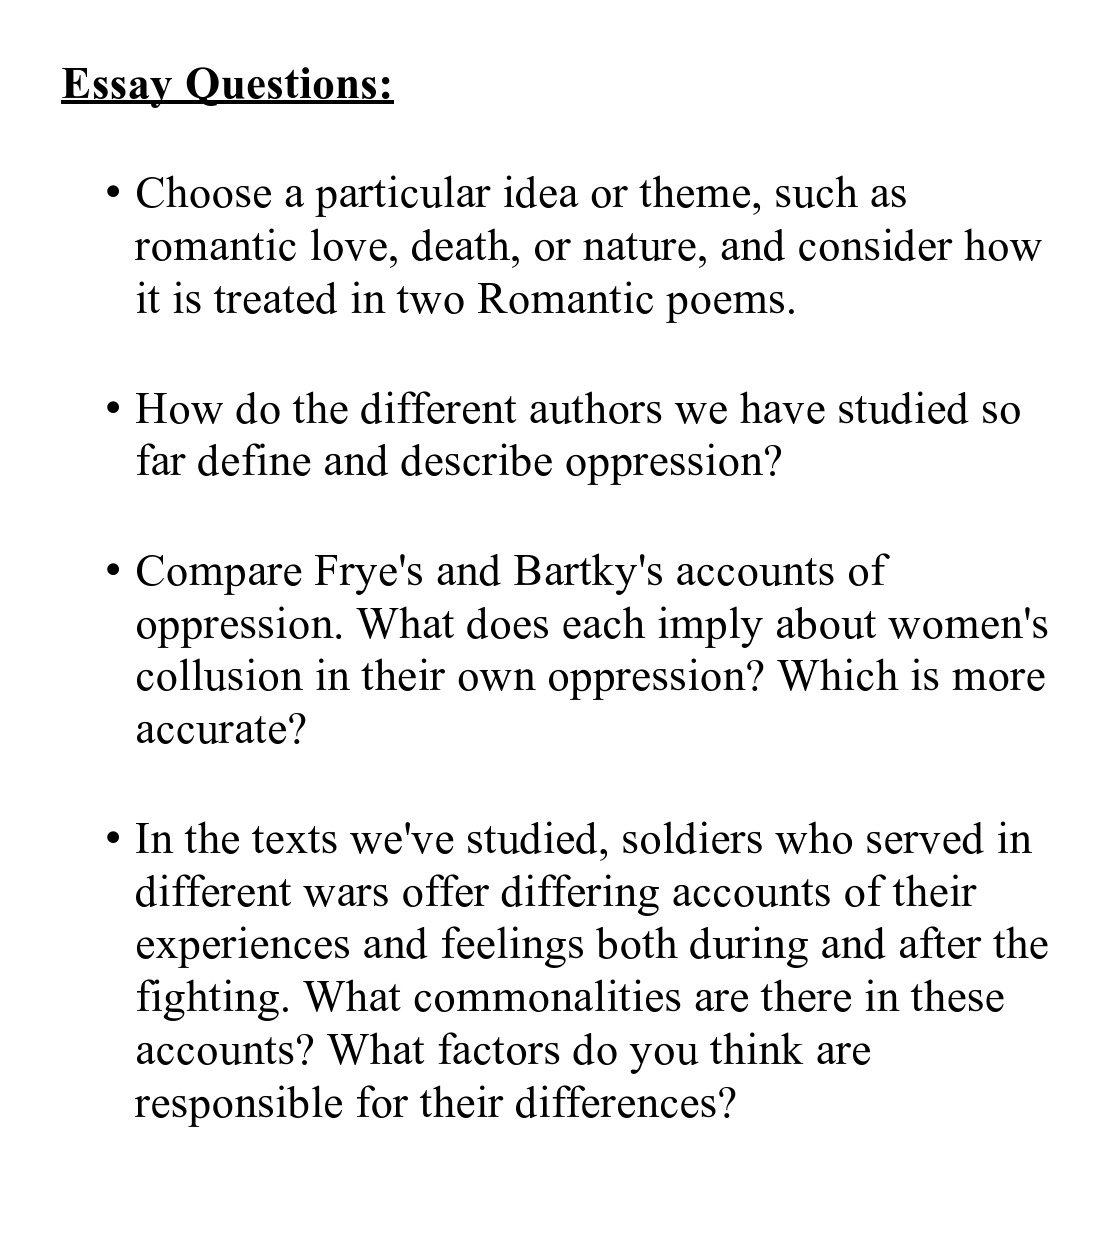 002 Short Essay Topics Example Questions Marvelous In English Composition For Class 9 Icse 2 Full